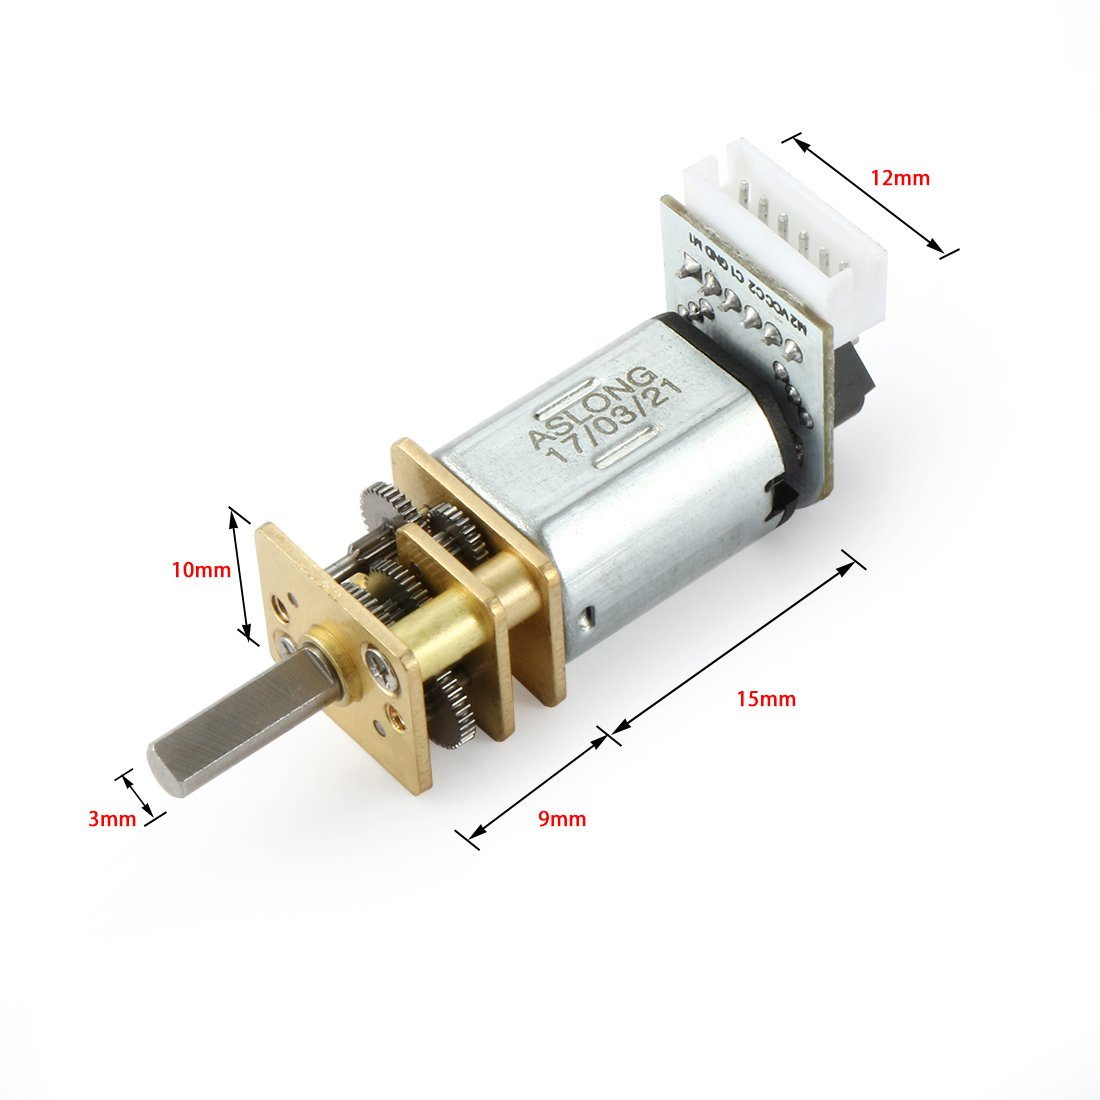 uxcell Uxcell R Electrical Machine 15RPM DC 3V 0.3A Geared Motor for Robot Wheel DIY Toys